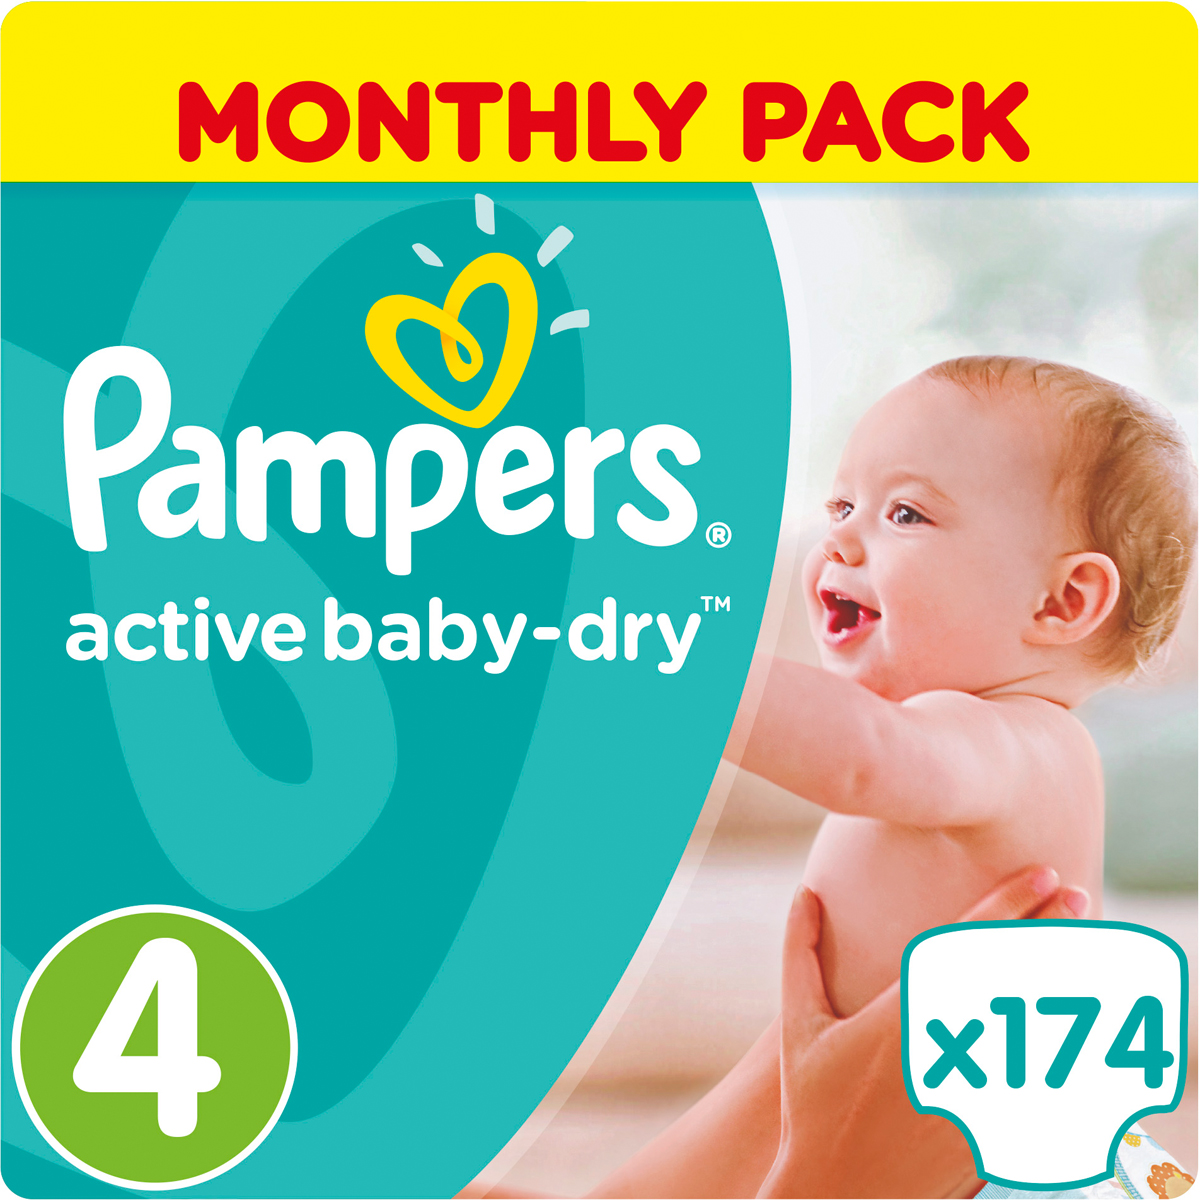 Pampers Подгузники Active Baby-Dry 8-14 кг Maxi 174 шт подгузники pampers active baby dry размер 4 7 14 кг 132 шт